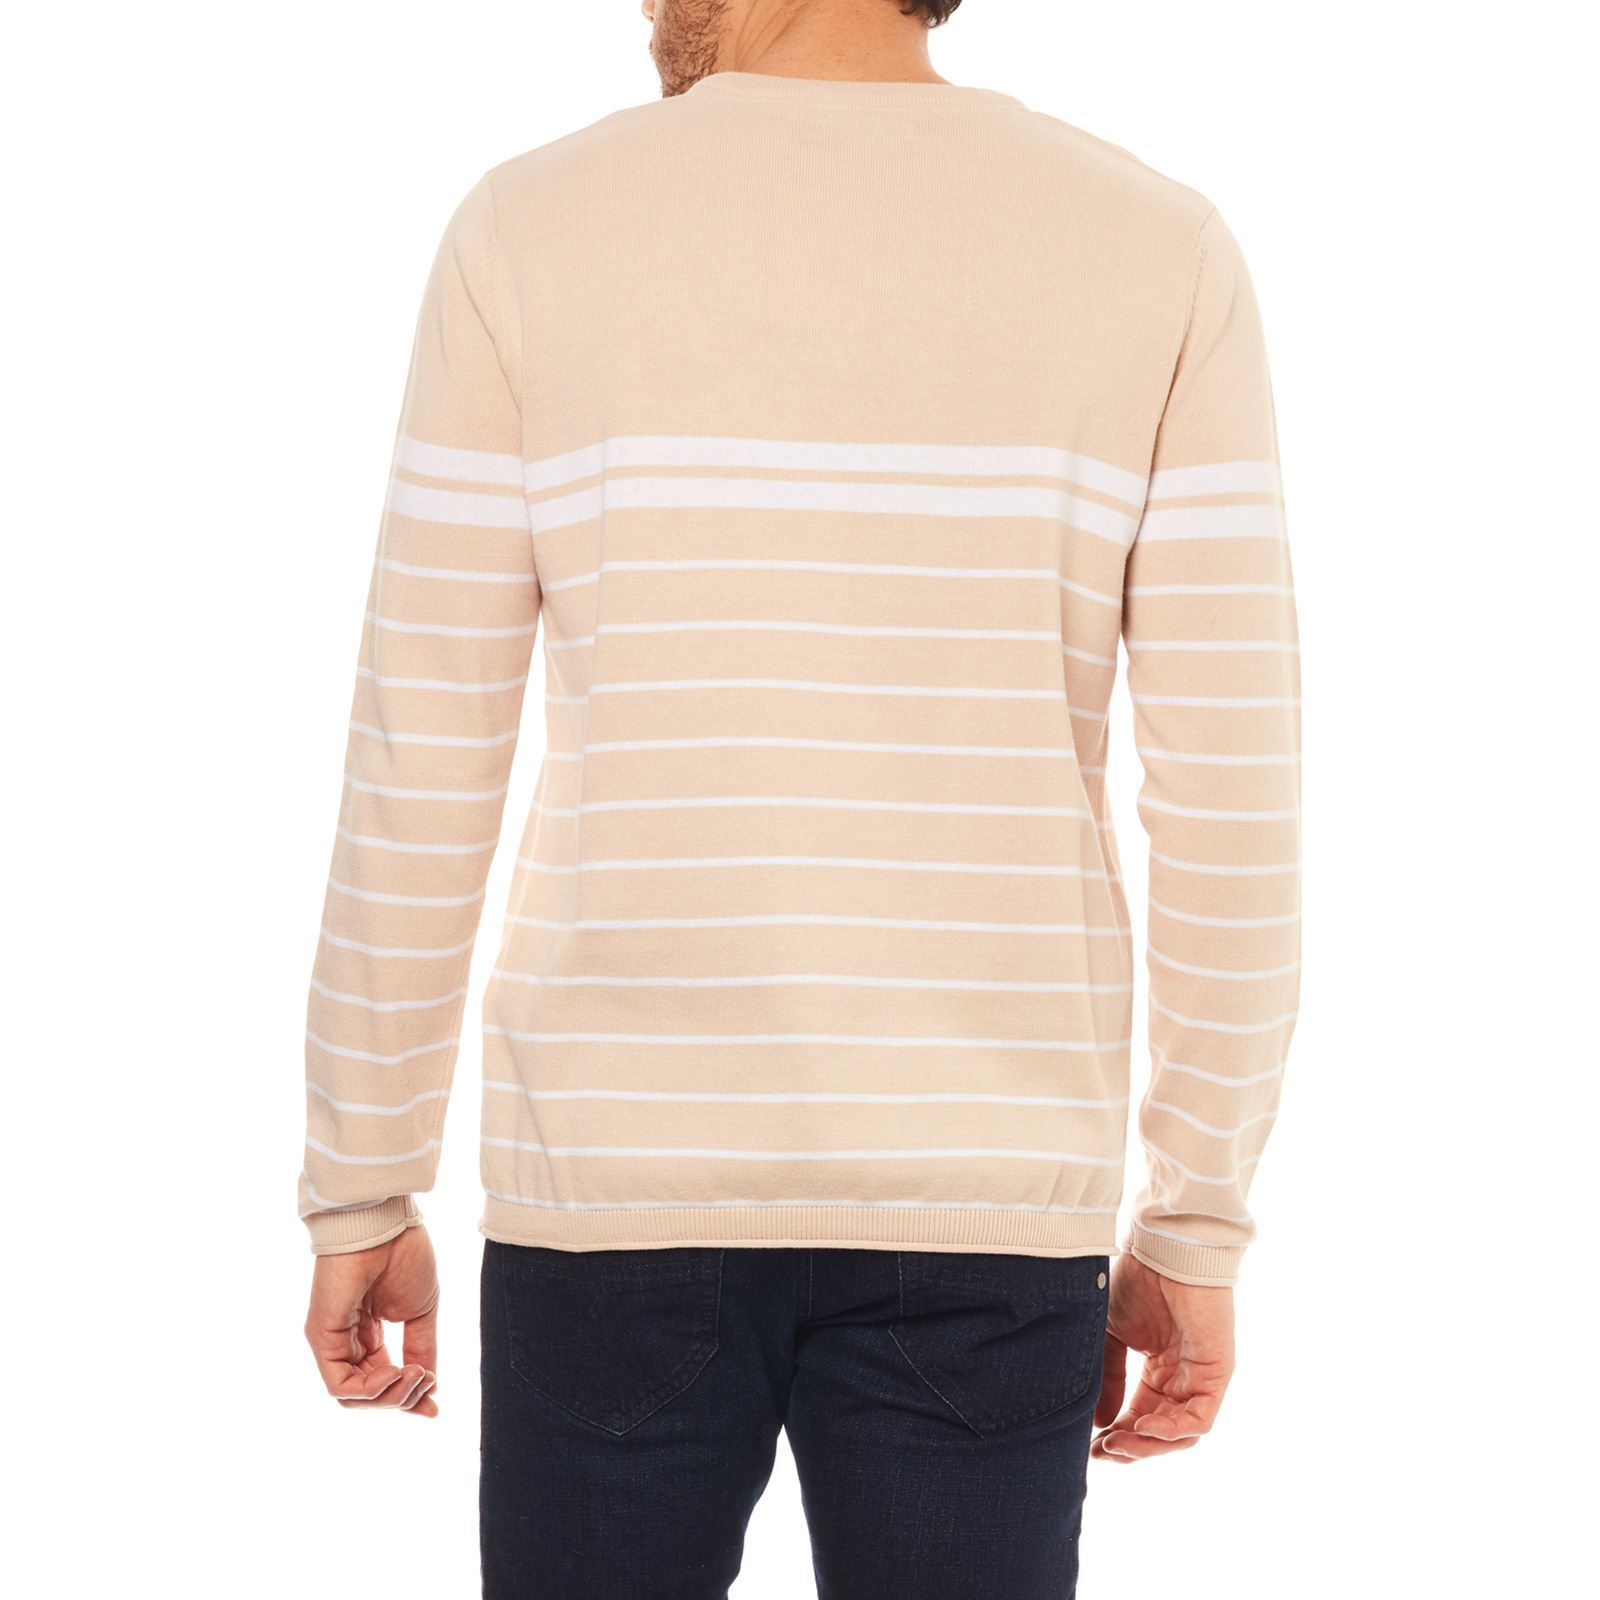 Celio BeigeBrandalley Celio Nechillray Maglia Nechillray Maglia 3jc54LqAR